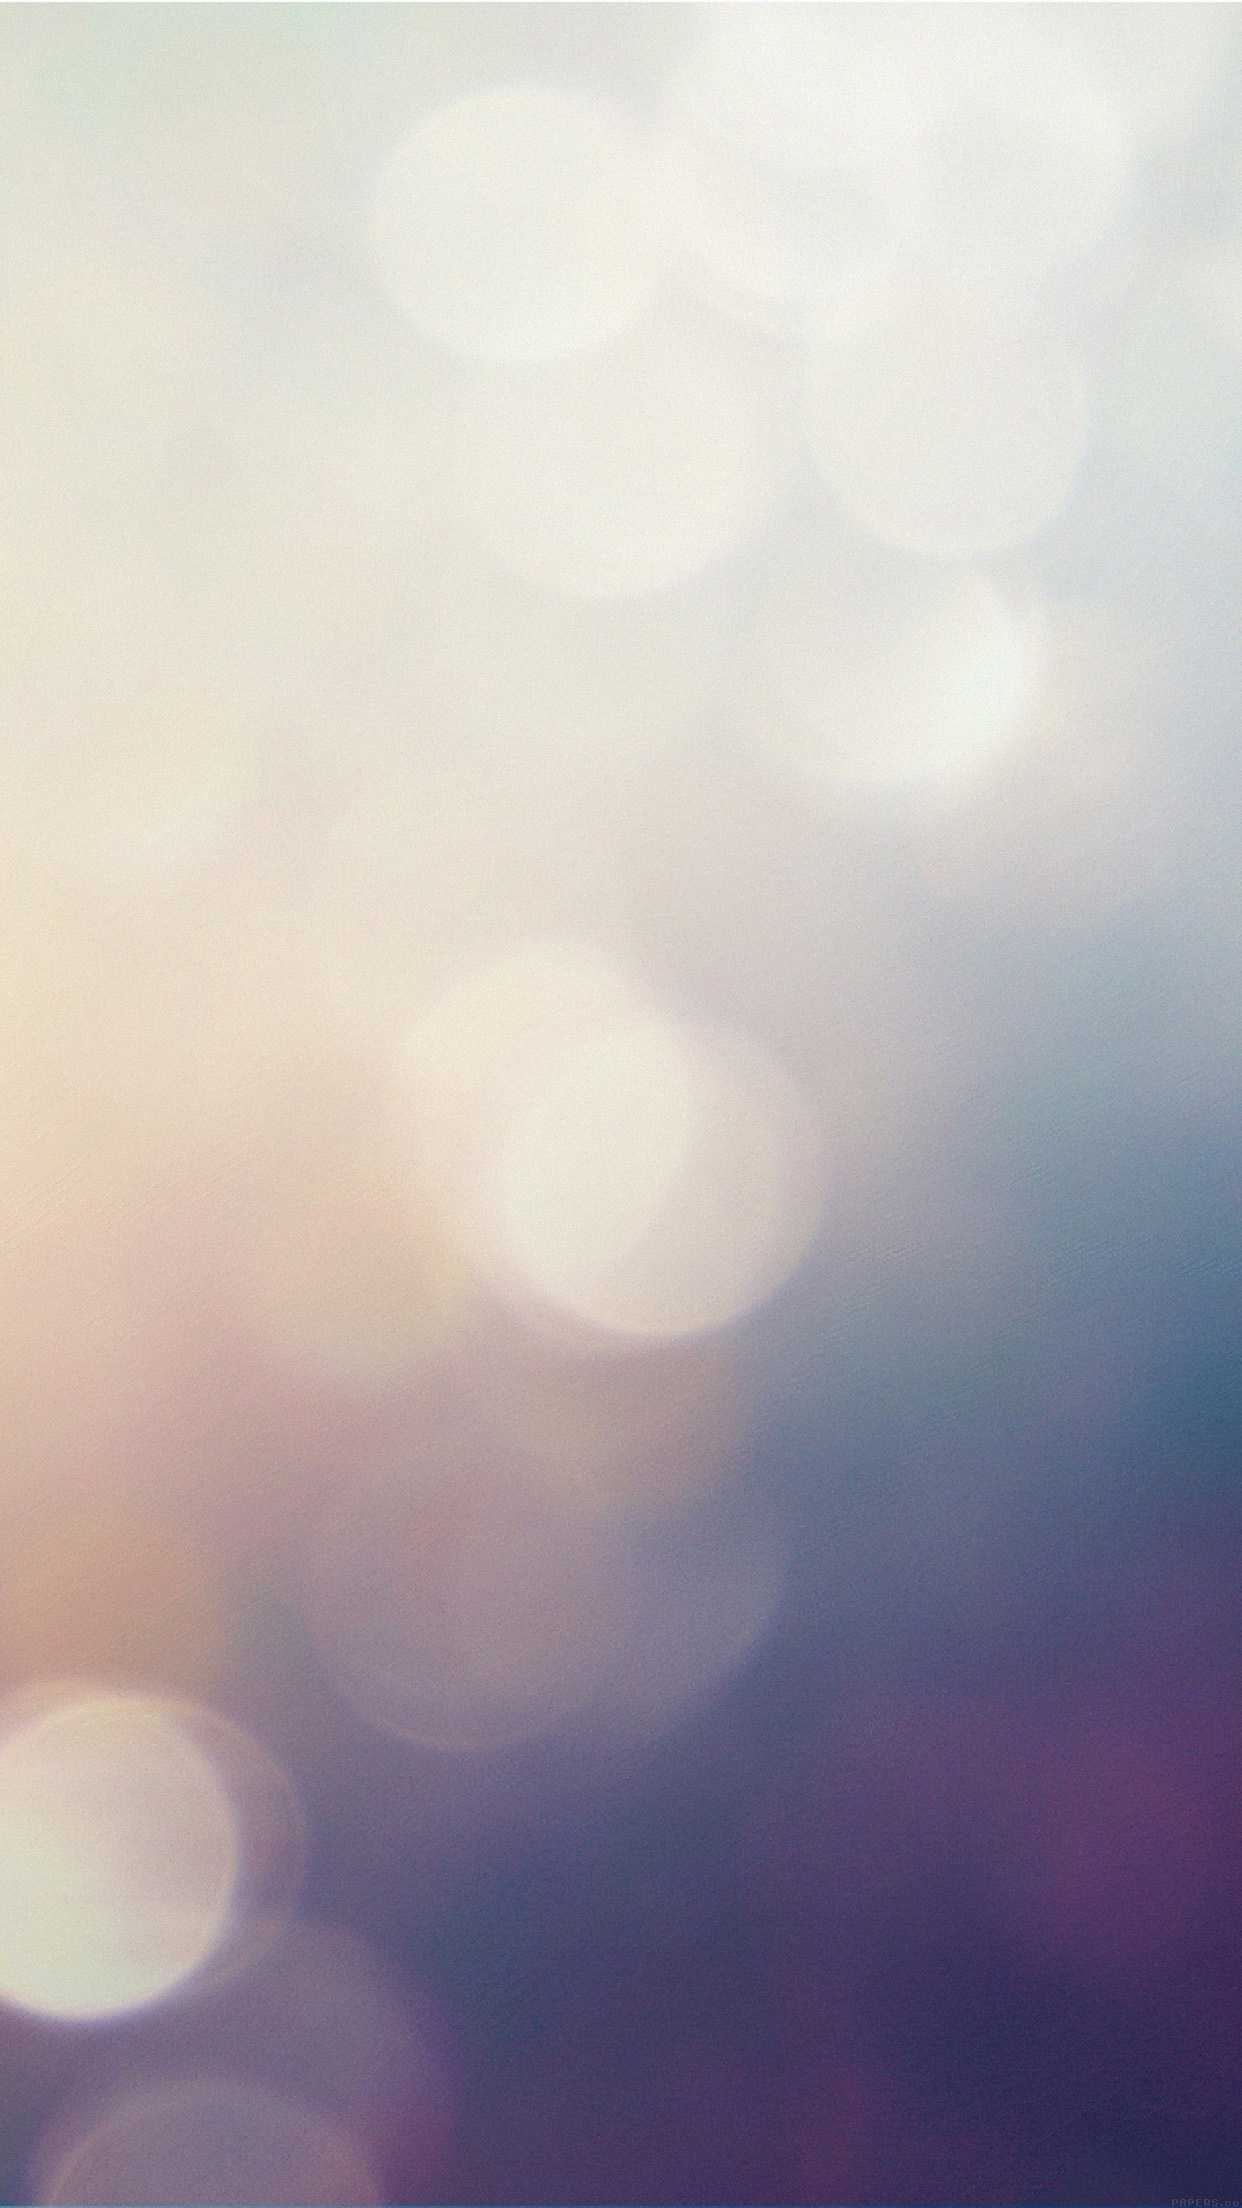 Plain Black Iphone Wallpaper Bokeh Wallpapers For Iphone And Ipad